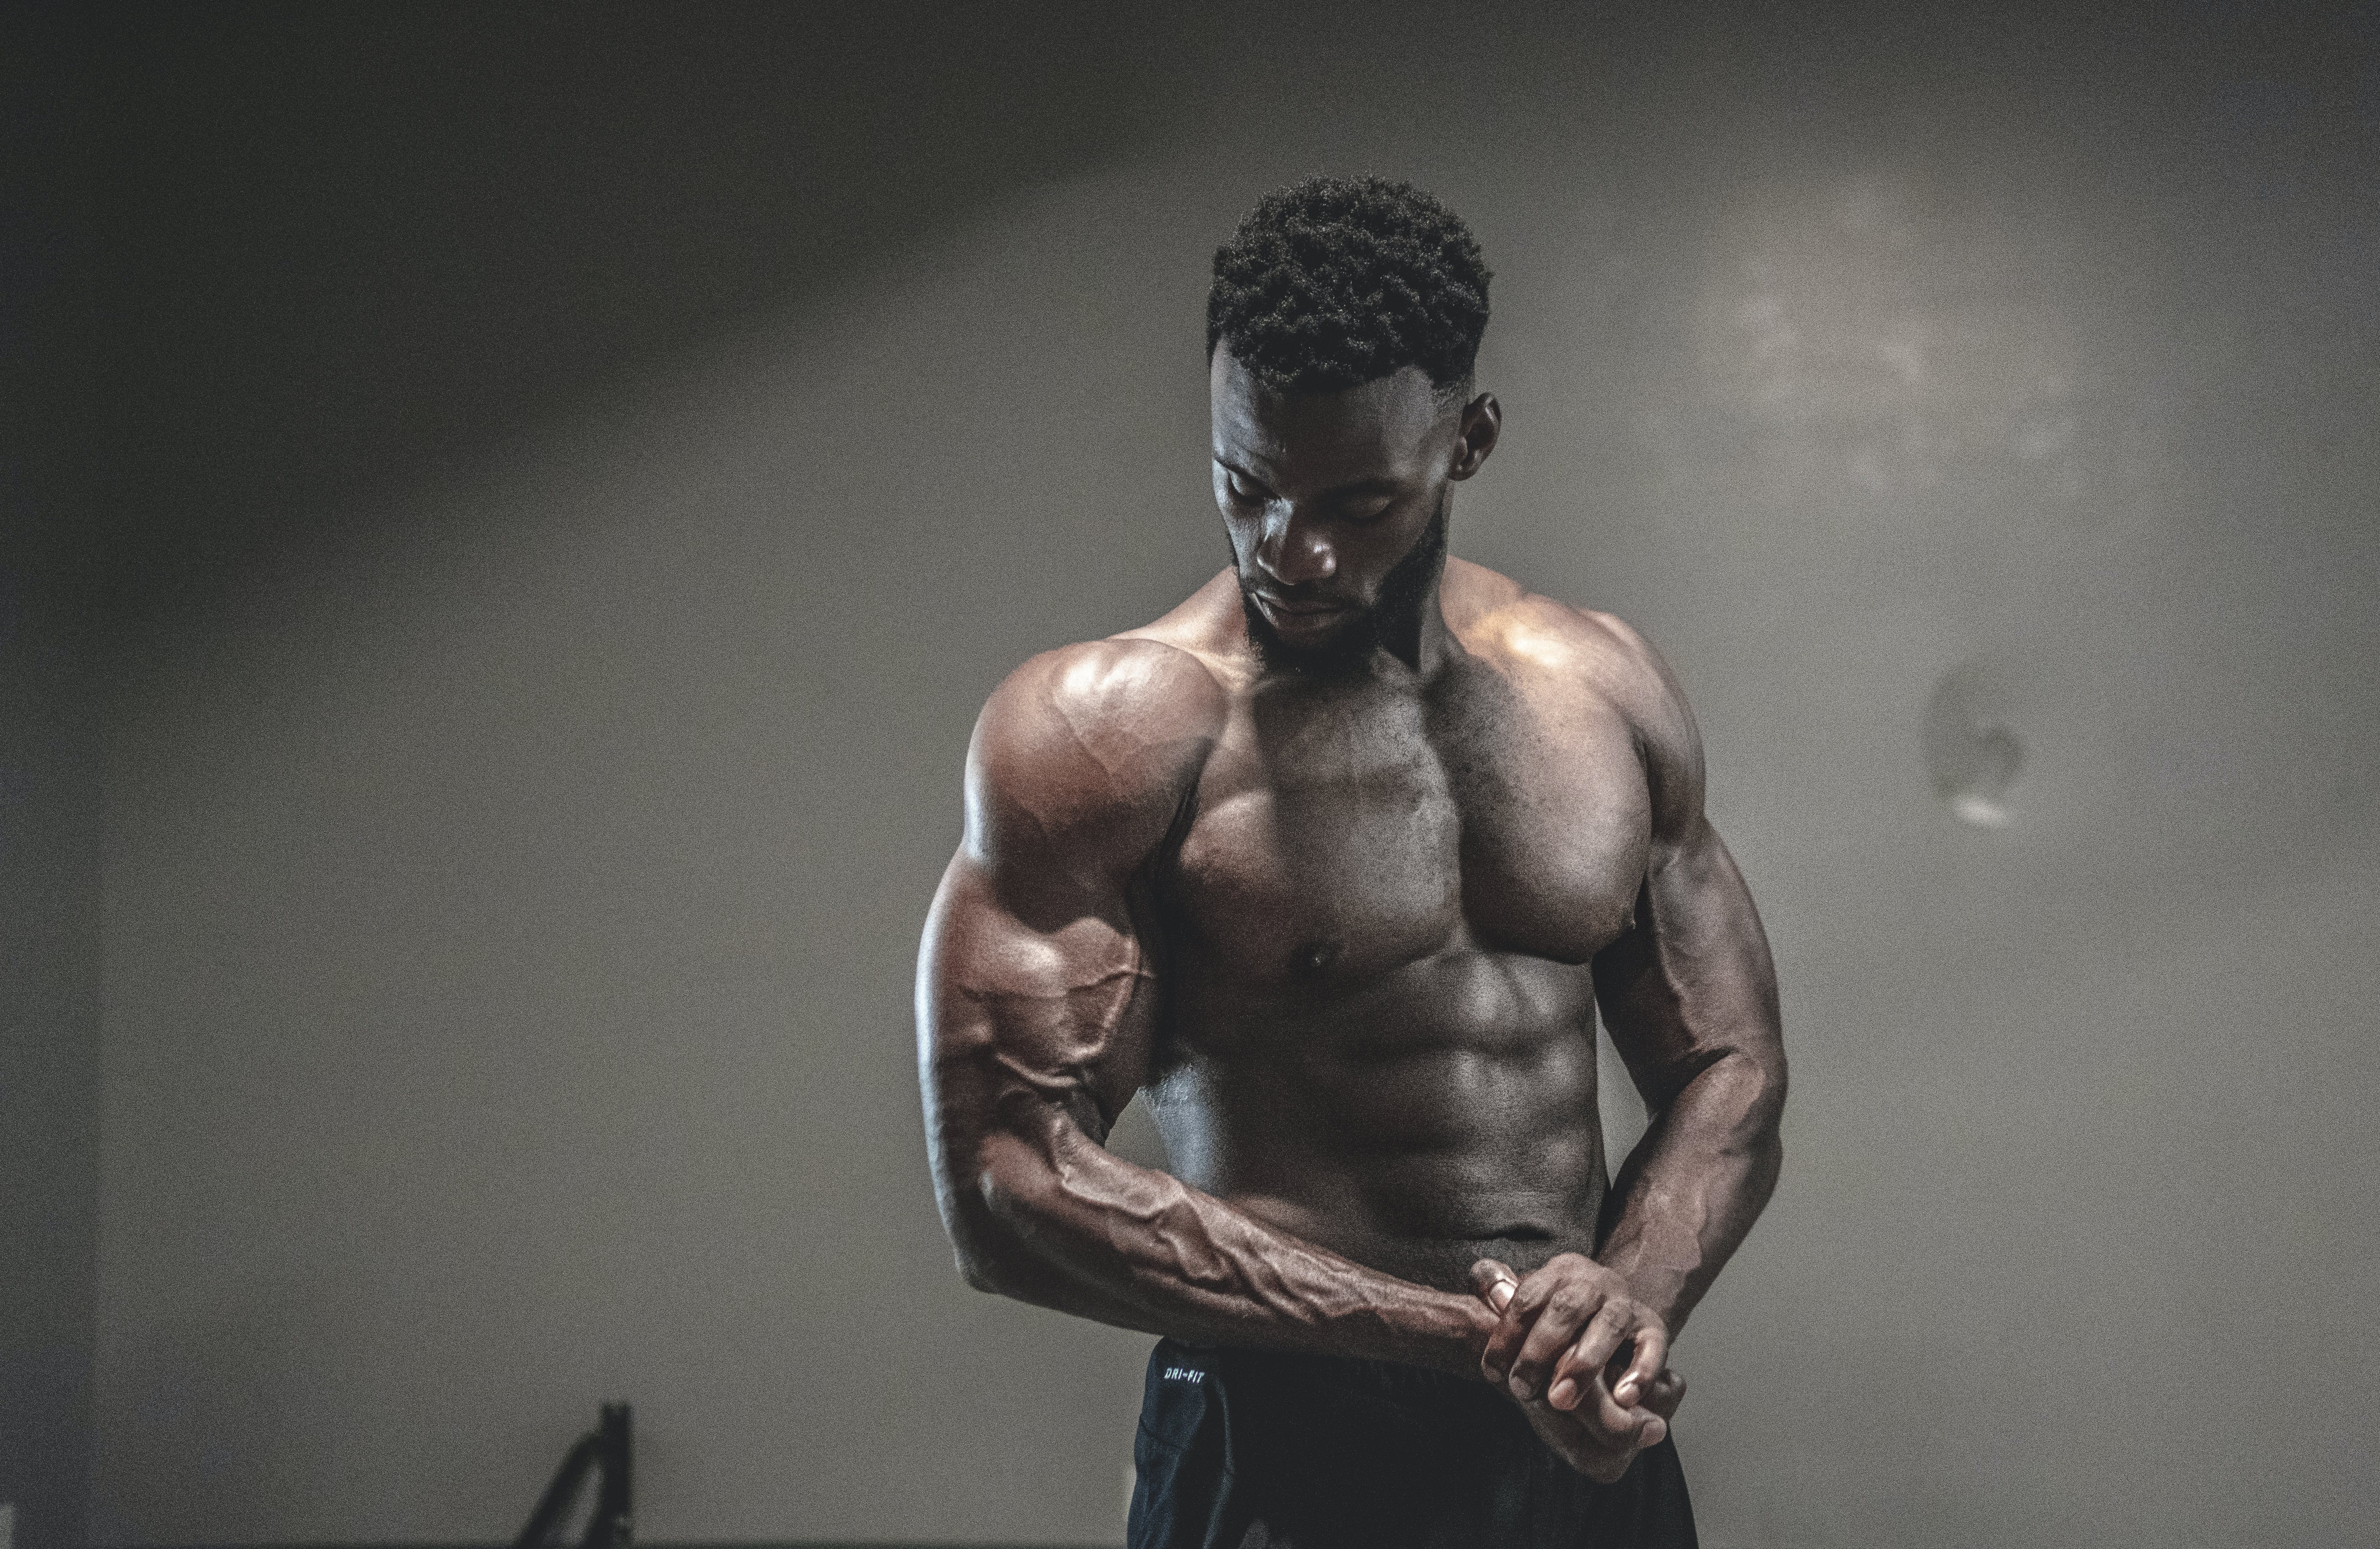 500 Amazing Fitness Photos Pexels Free Stock Photos